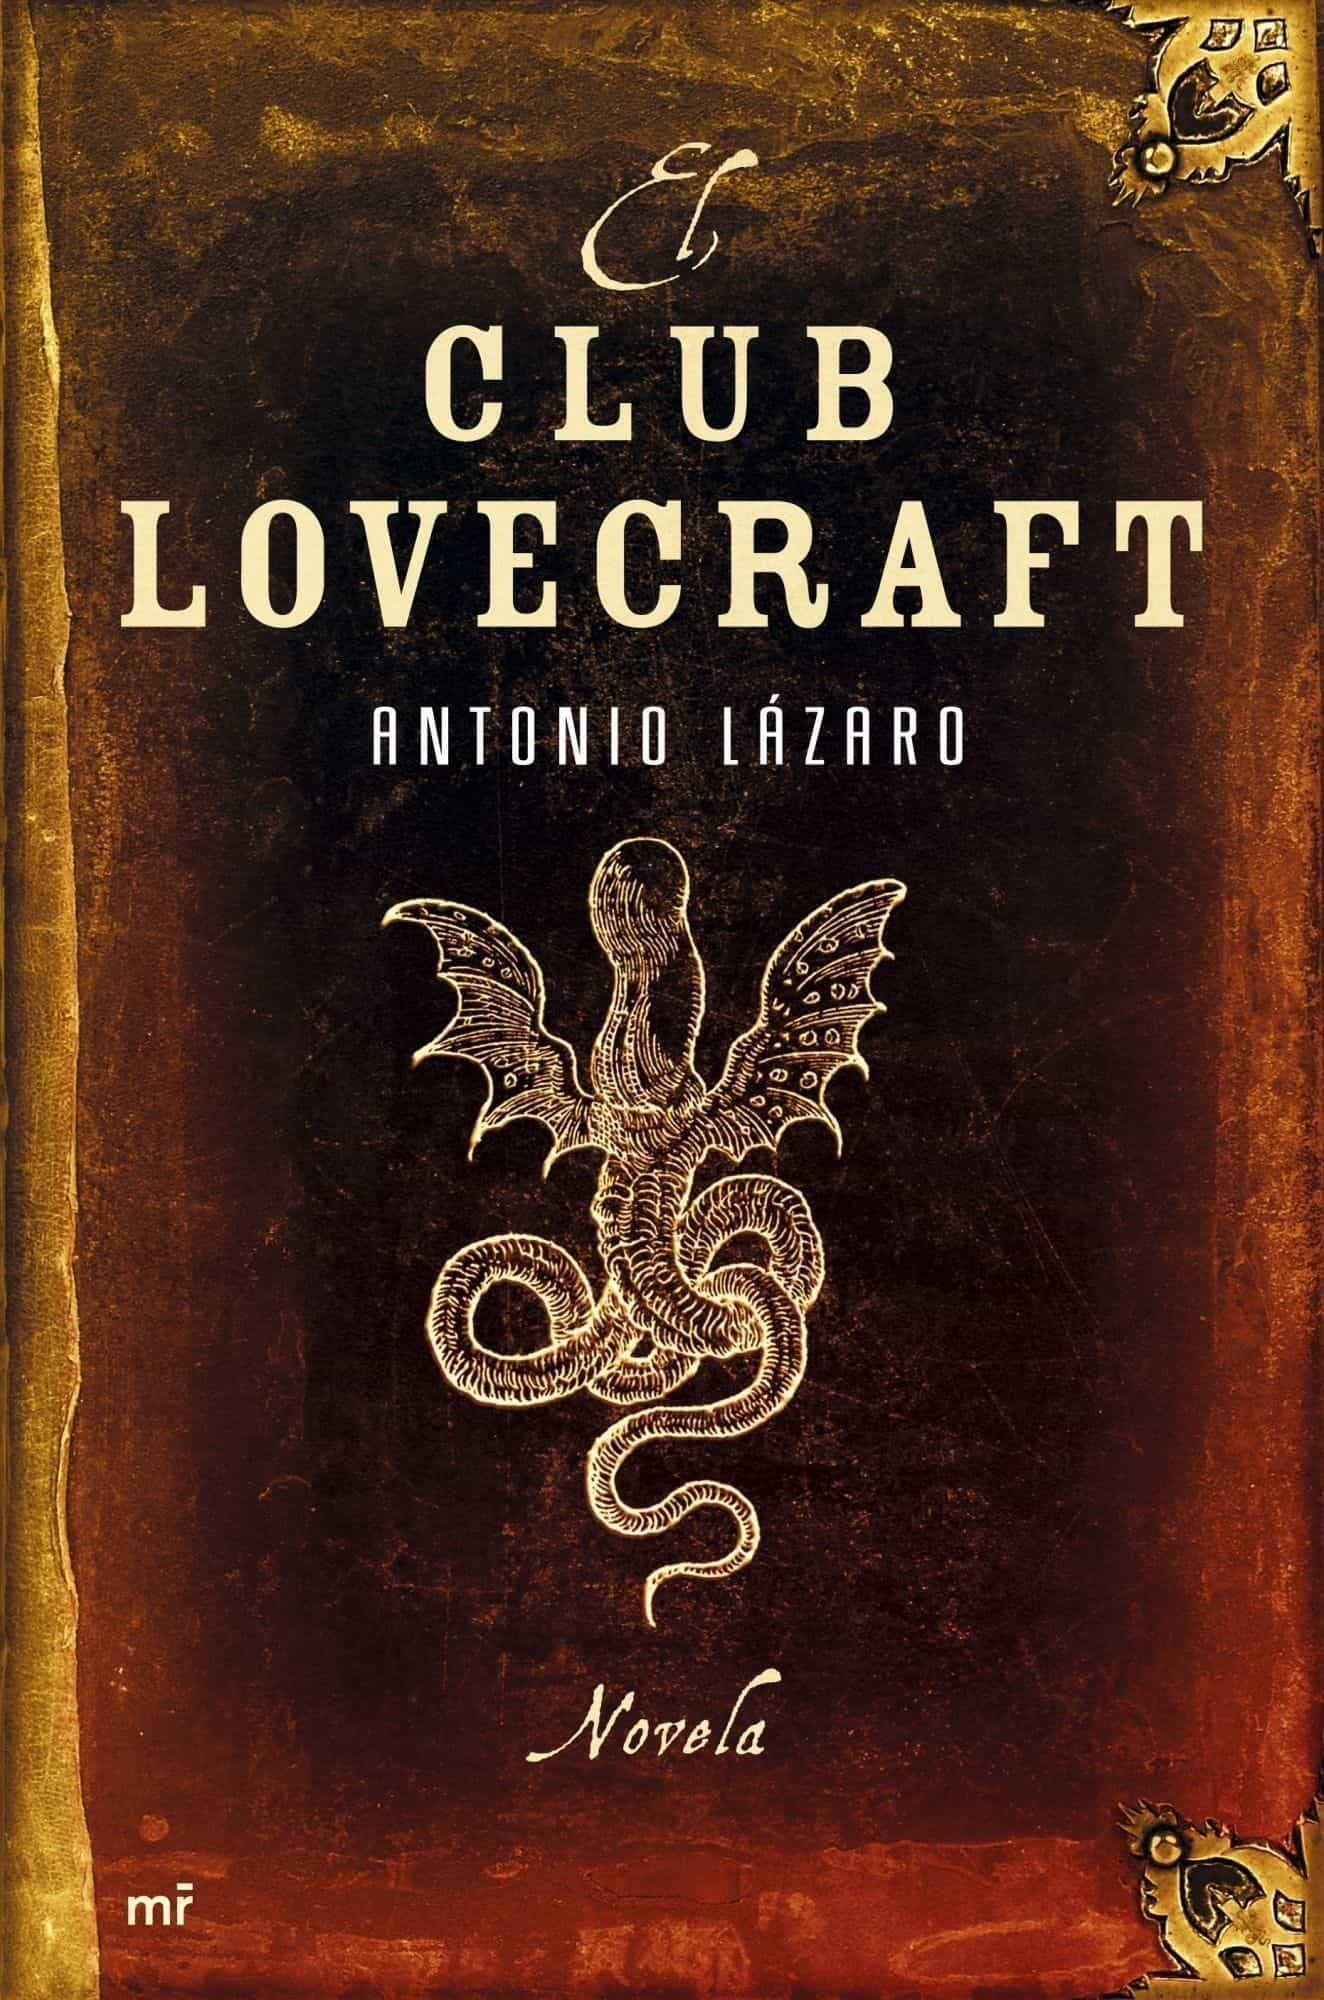 Ducable Libros El Club Lovecraft Antonio Lazaro Comprar Libro 9788427033290